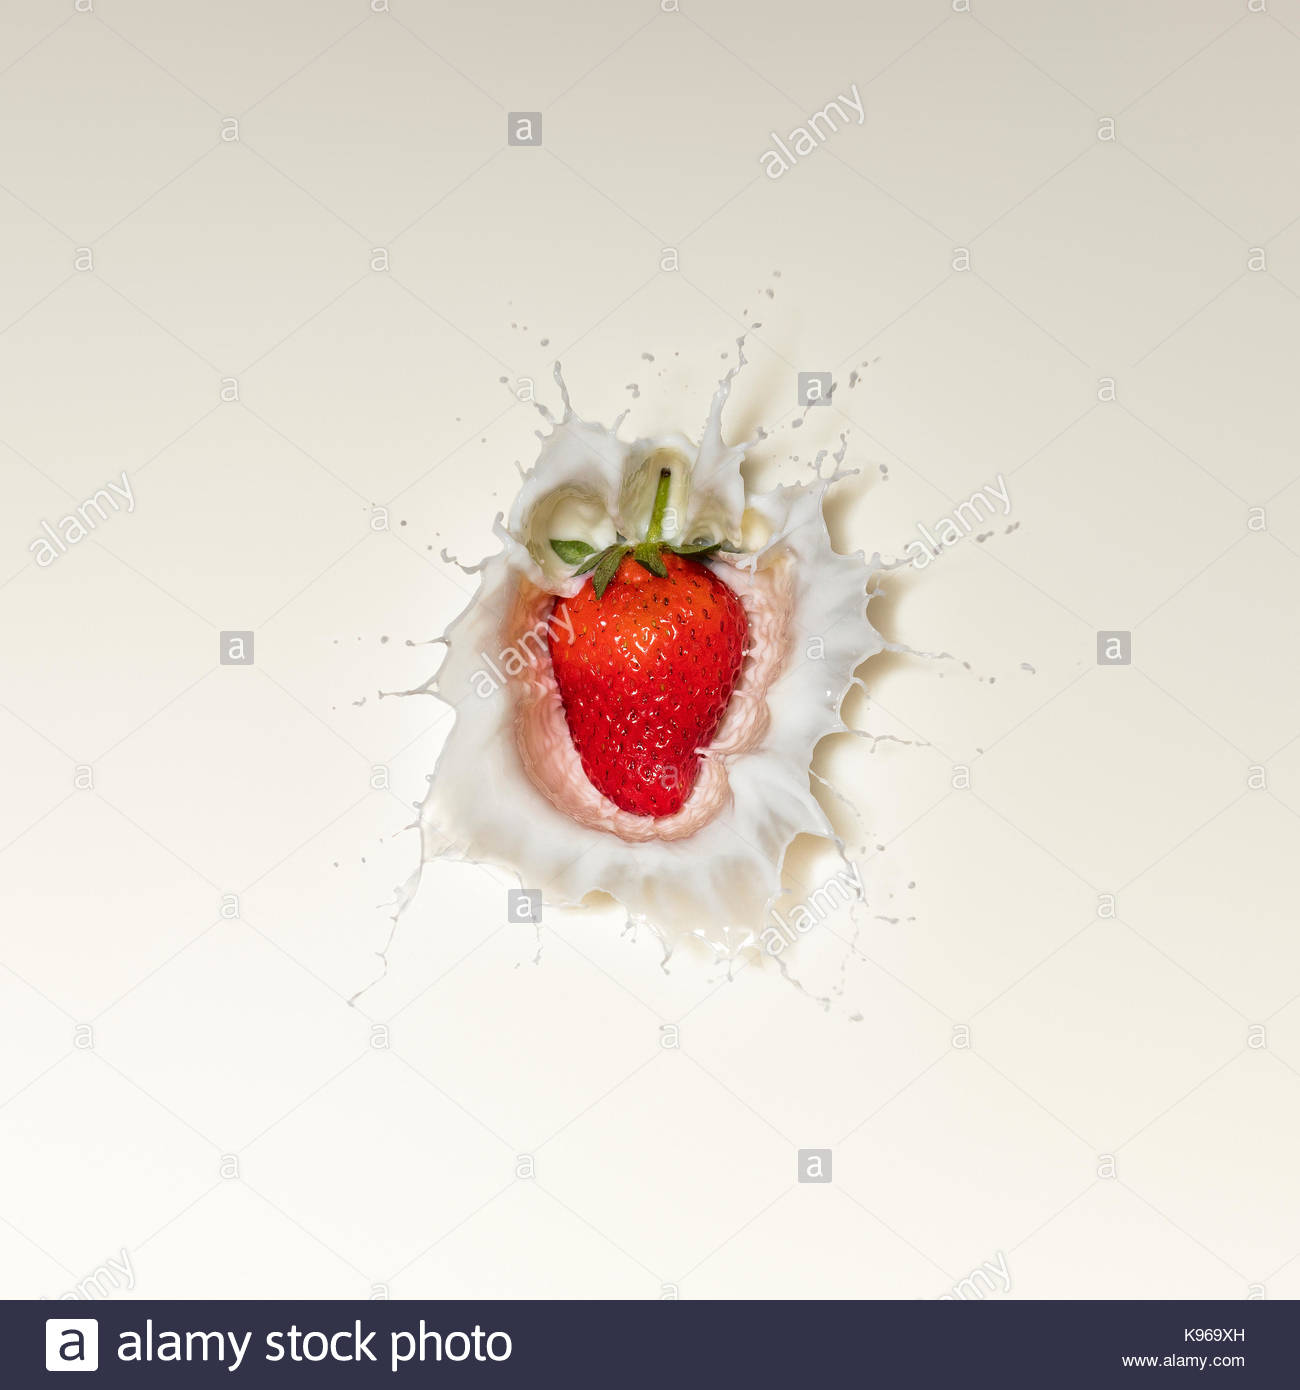 Fresh Red Strawberry fruit splash in white milk and viewed directly from above - Stock Image